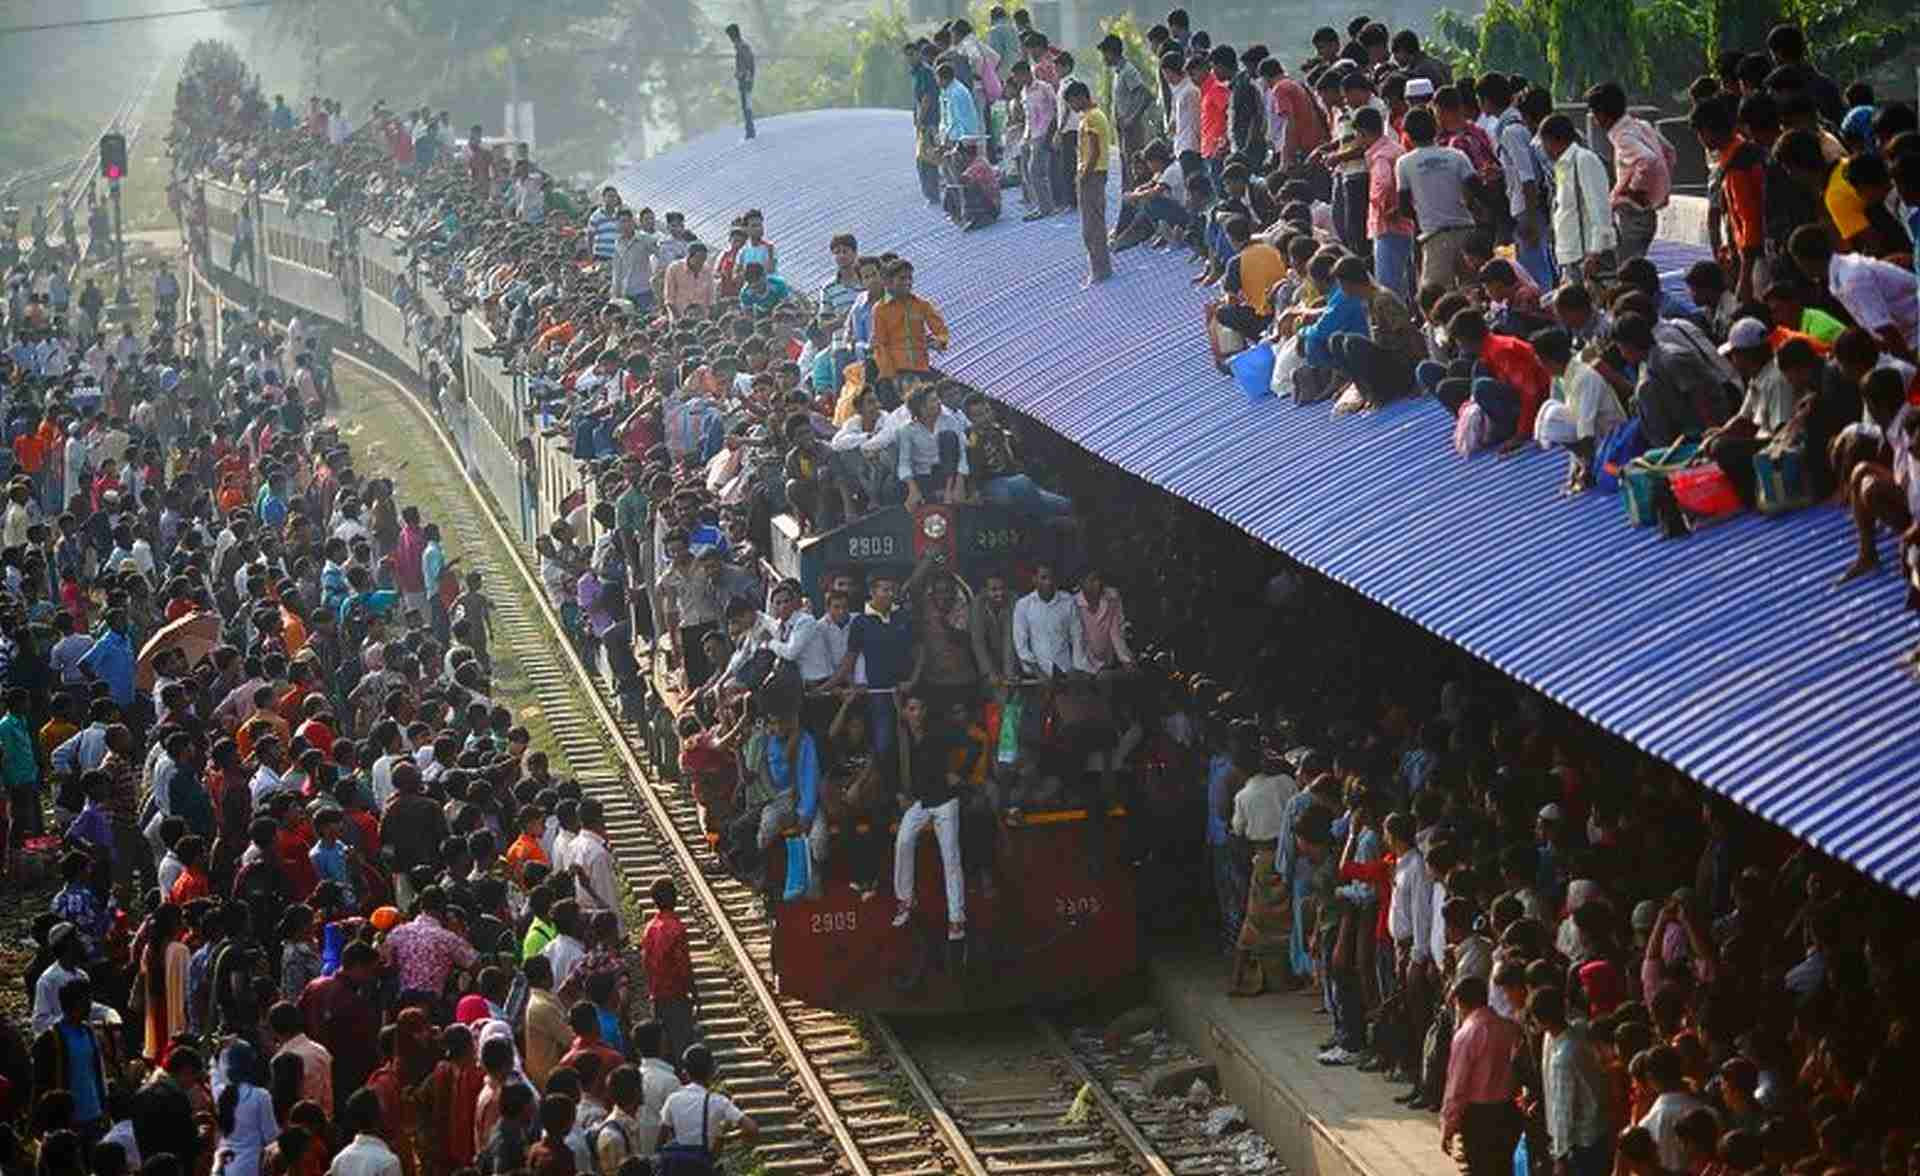 The Most Crowded Train In The World- Bangladesh Railway (Must See) - YouTube